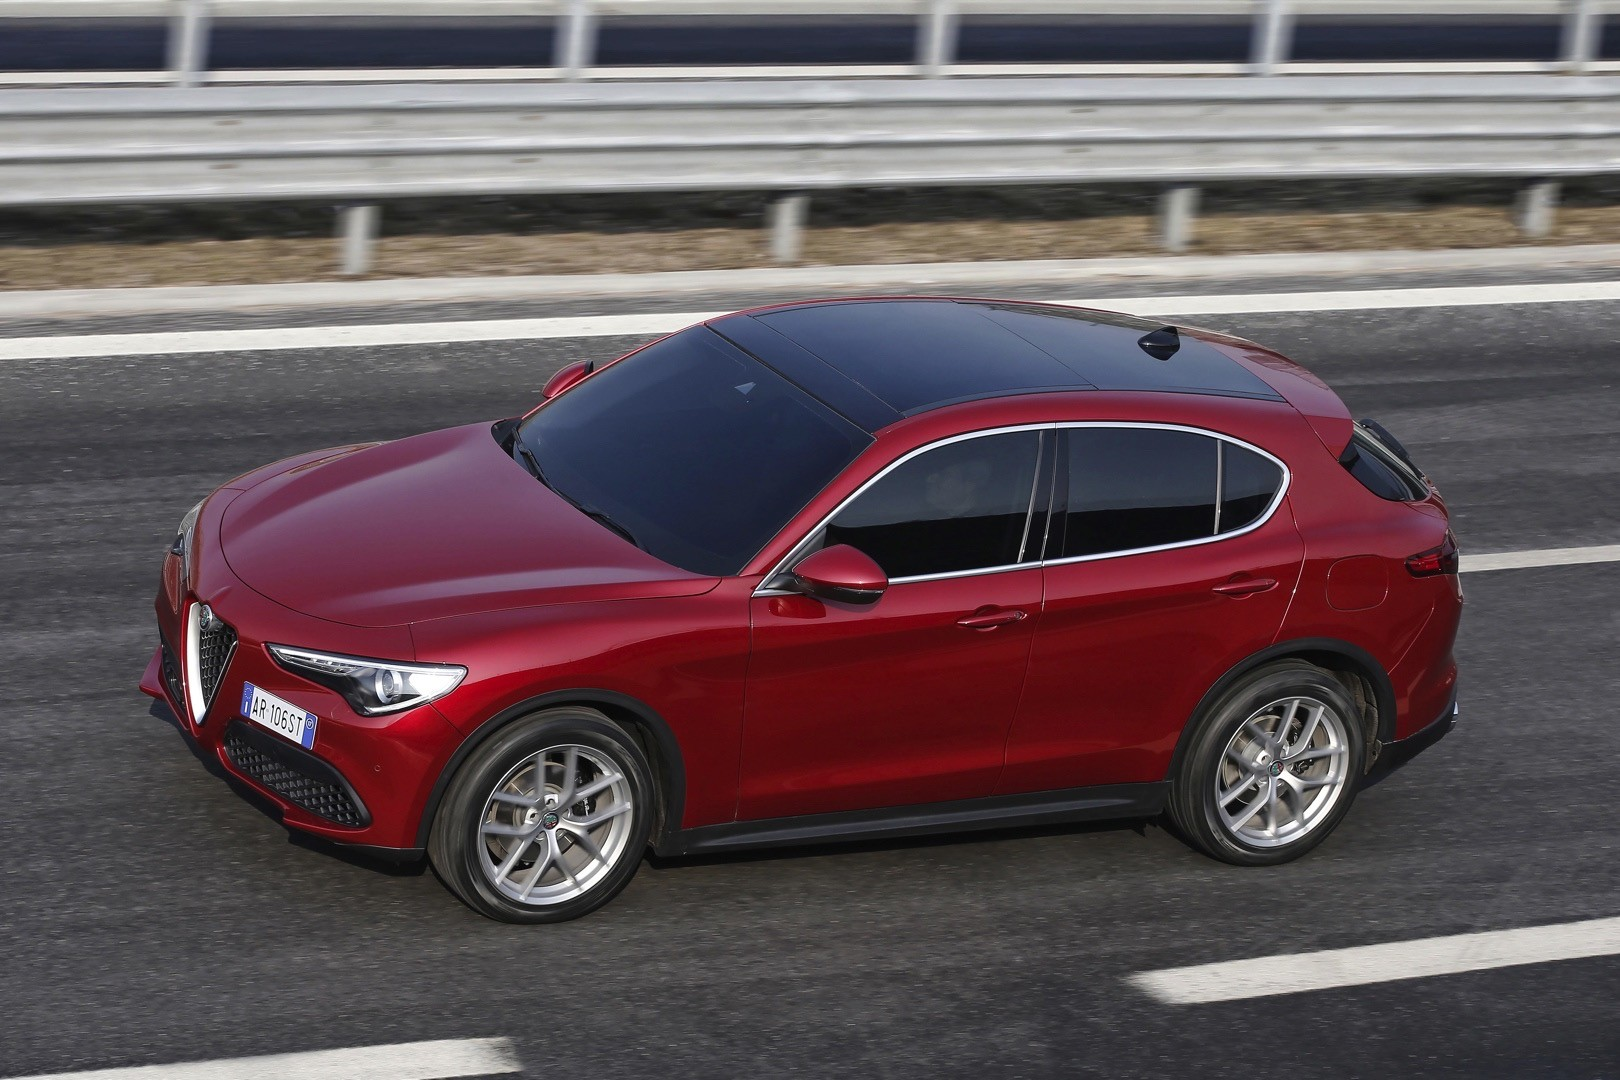 2018 alfa romeo stelvio priced from 41 995 in the u s autoevolution. Black Bedroom Furniture Sets. Home Design Ideas